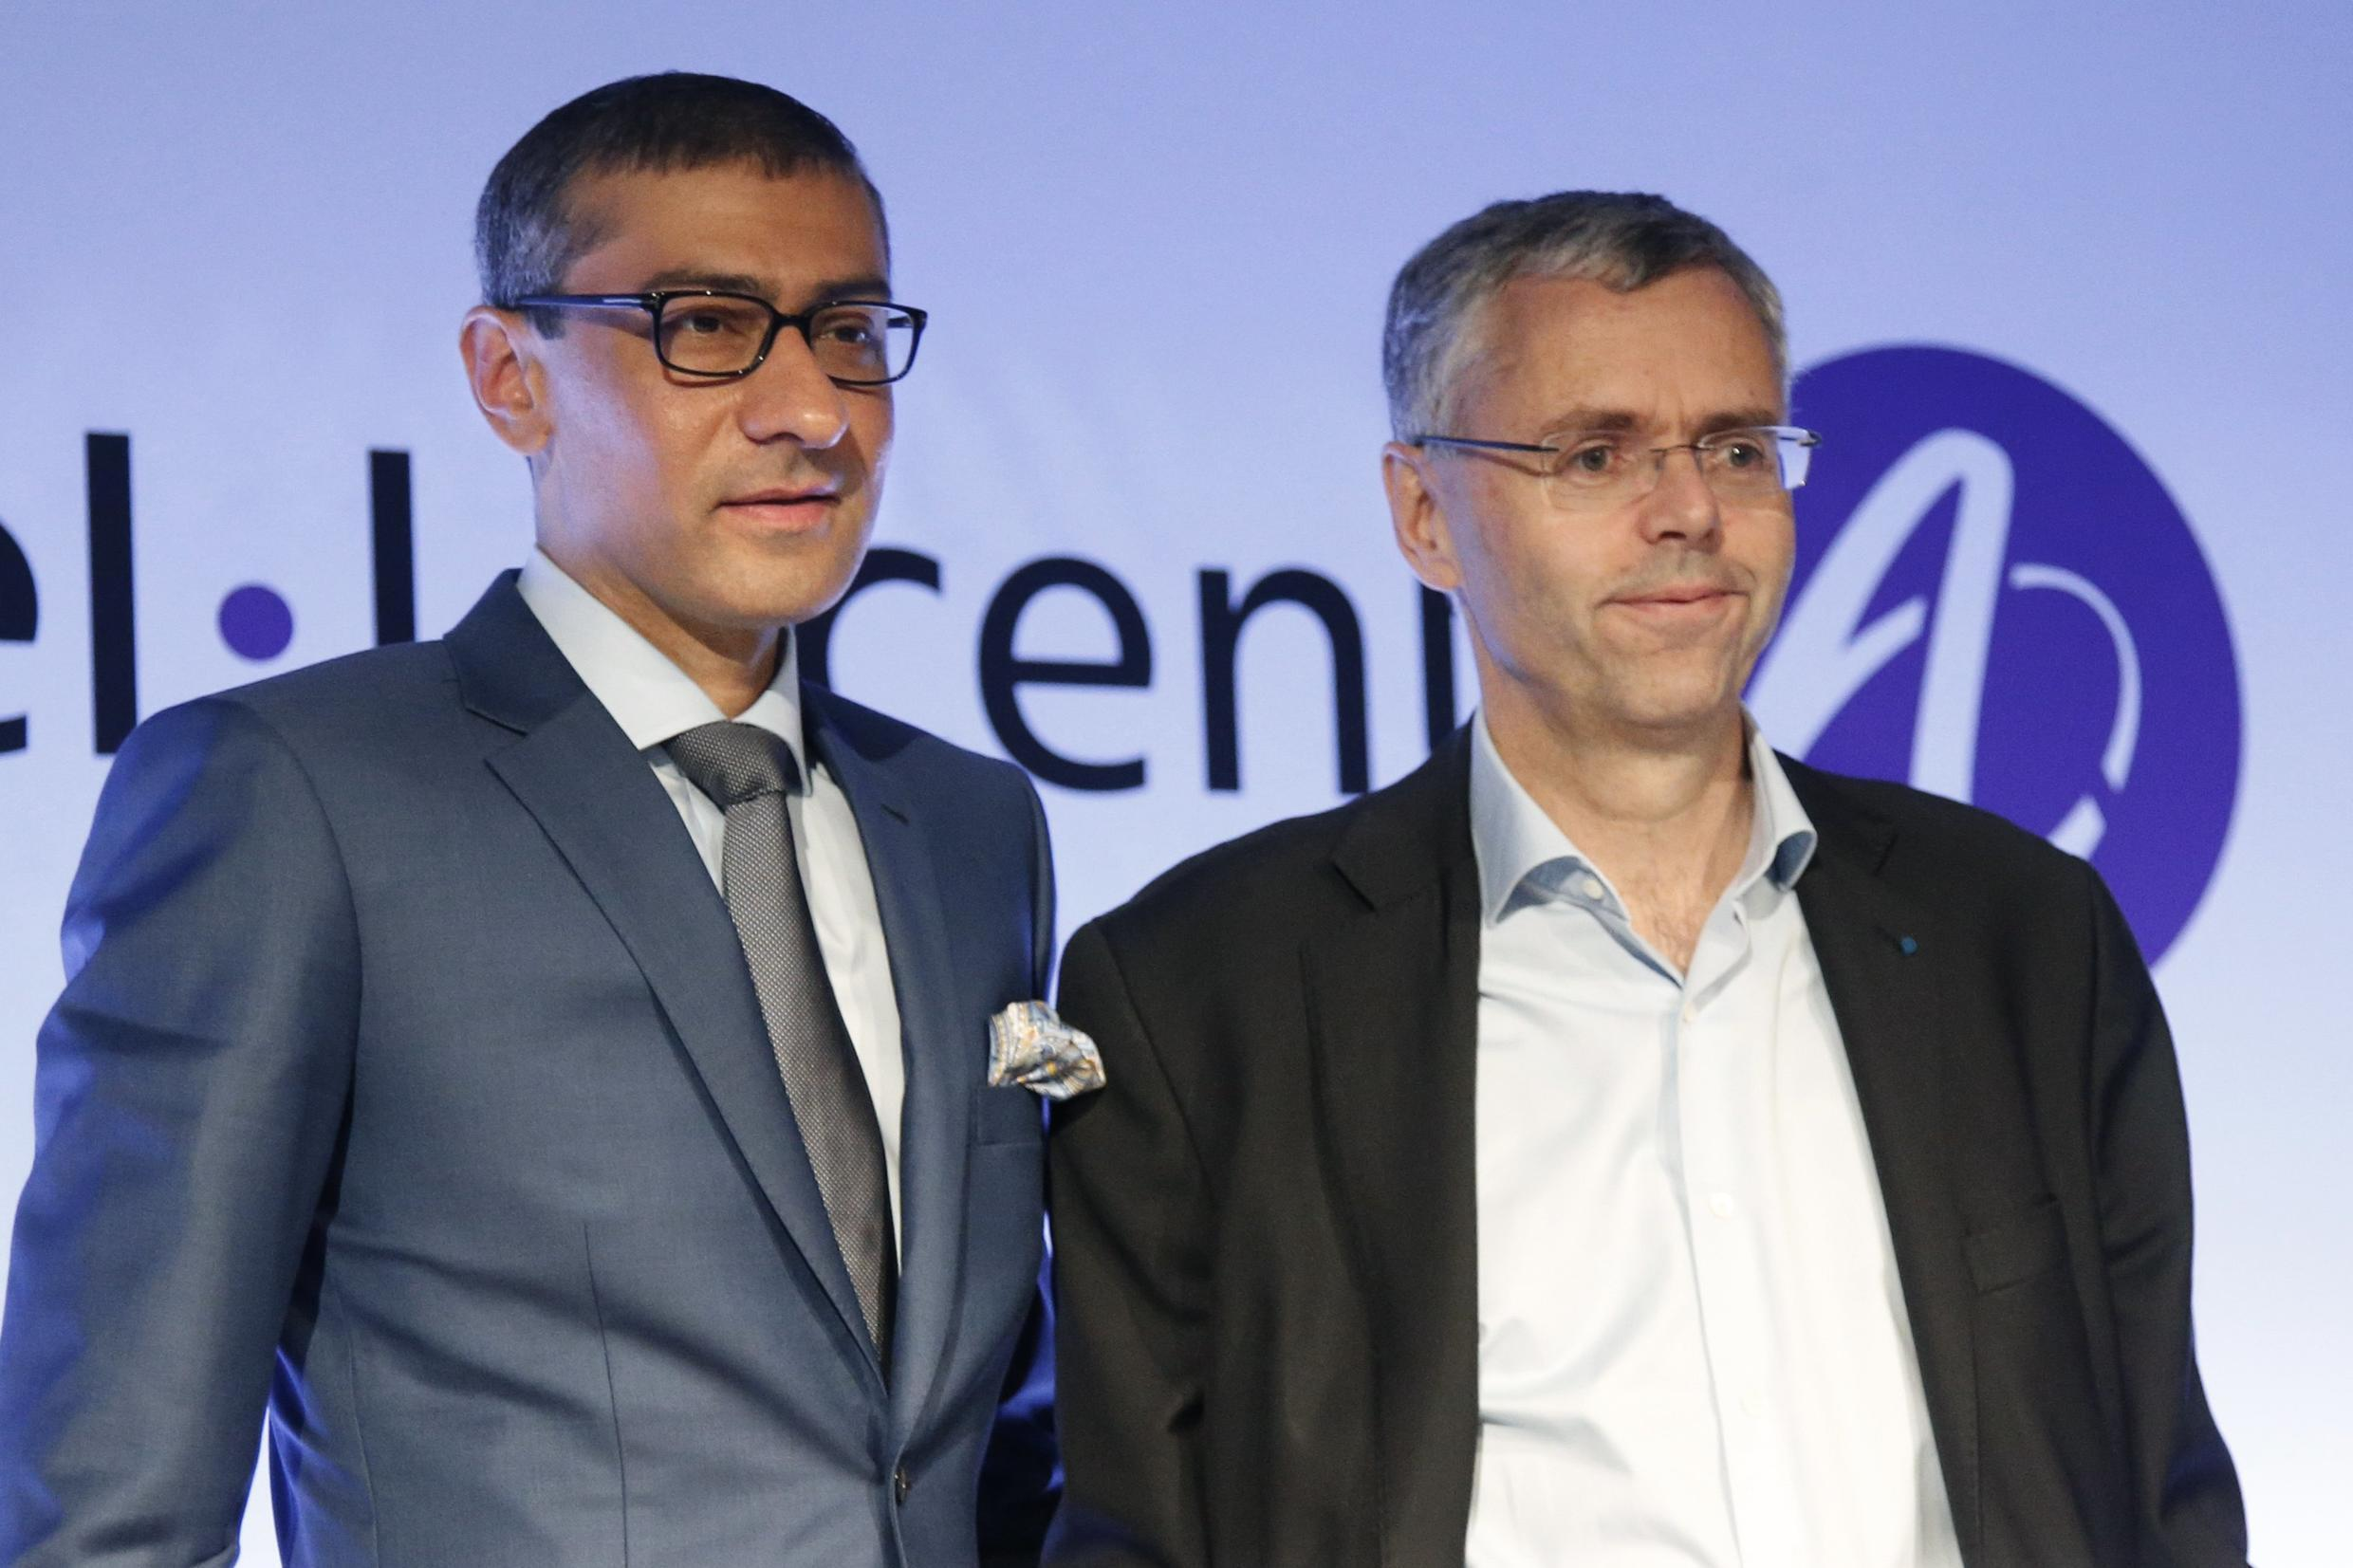 Michel Combes, CEO of Alcatel-Lucent (right) and Rajeev Suri (left), president of Nokia, after a press conference in Paris, 15 April 2015.